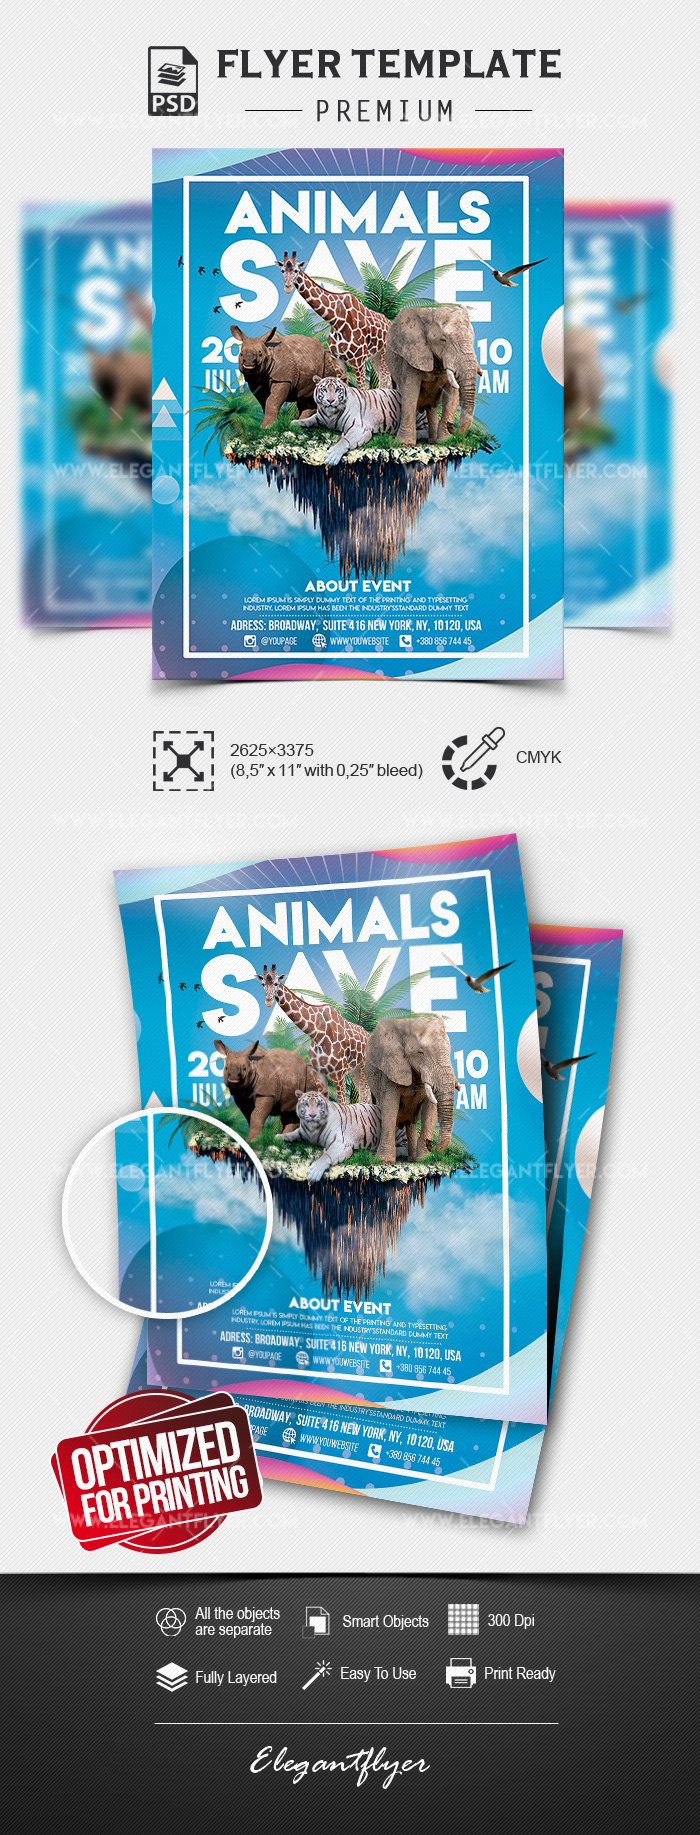 Save the Animals – Premium Flyer Template in PSD